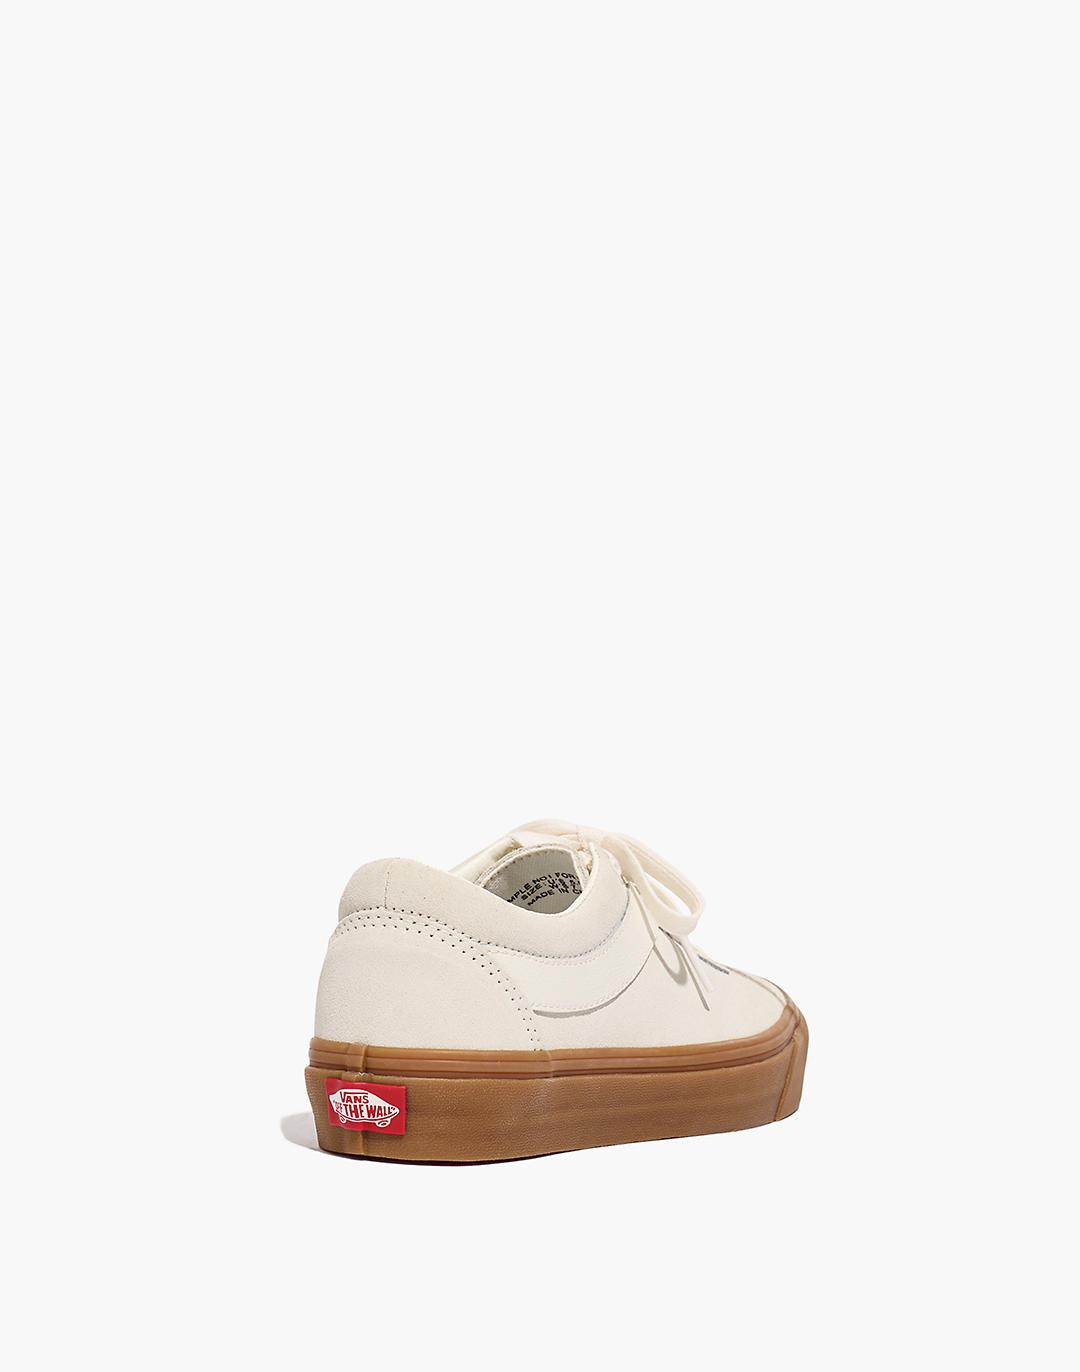 Vans® Unisex Bold NI Lace-Up Sneakers in Suede 2